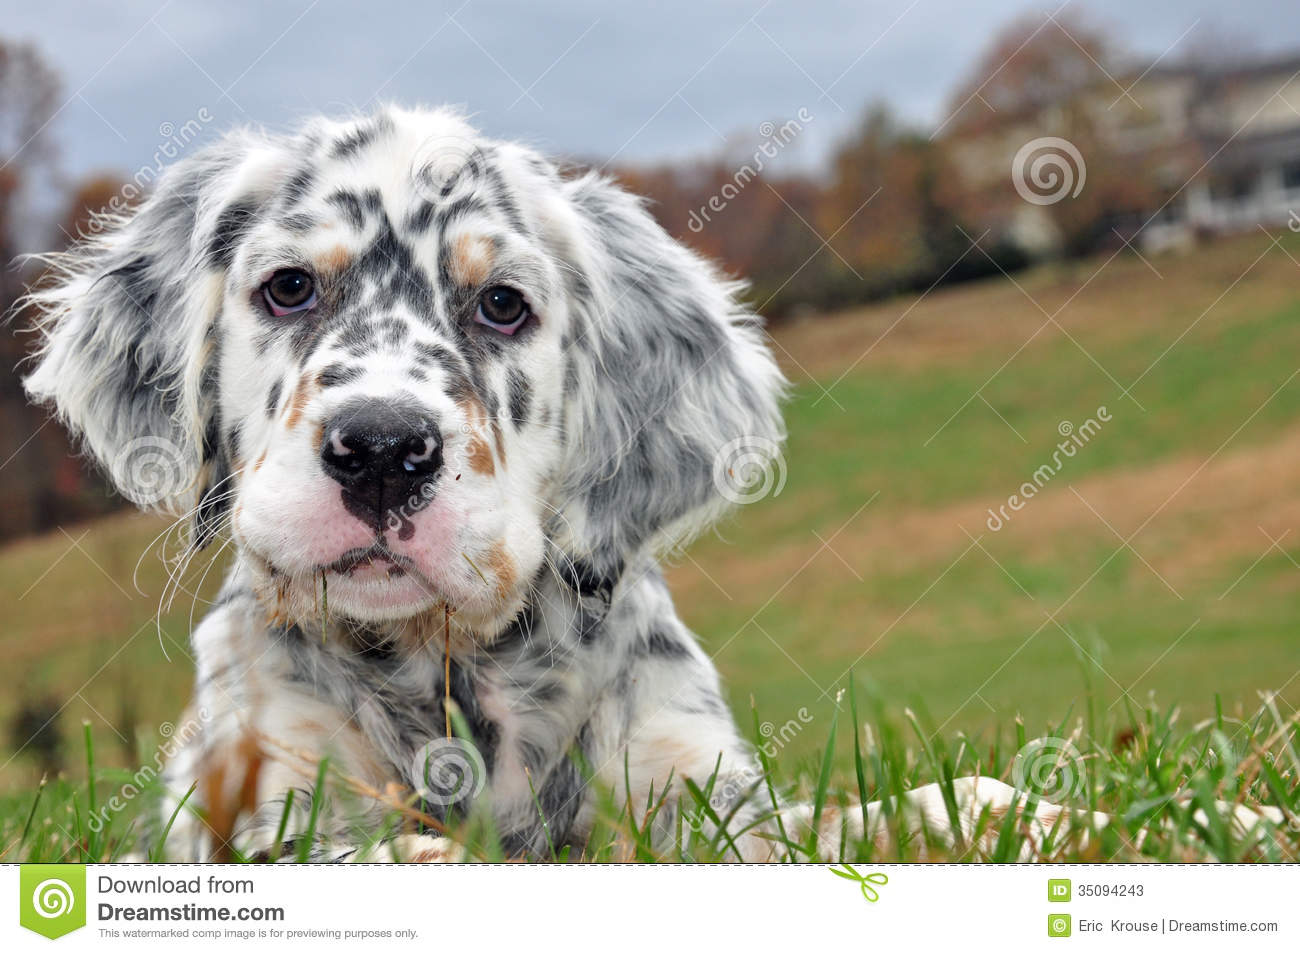 English Setter breeder in the mountains of North Carolina.